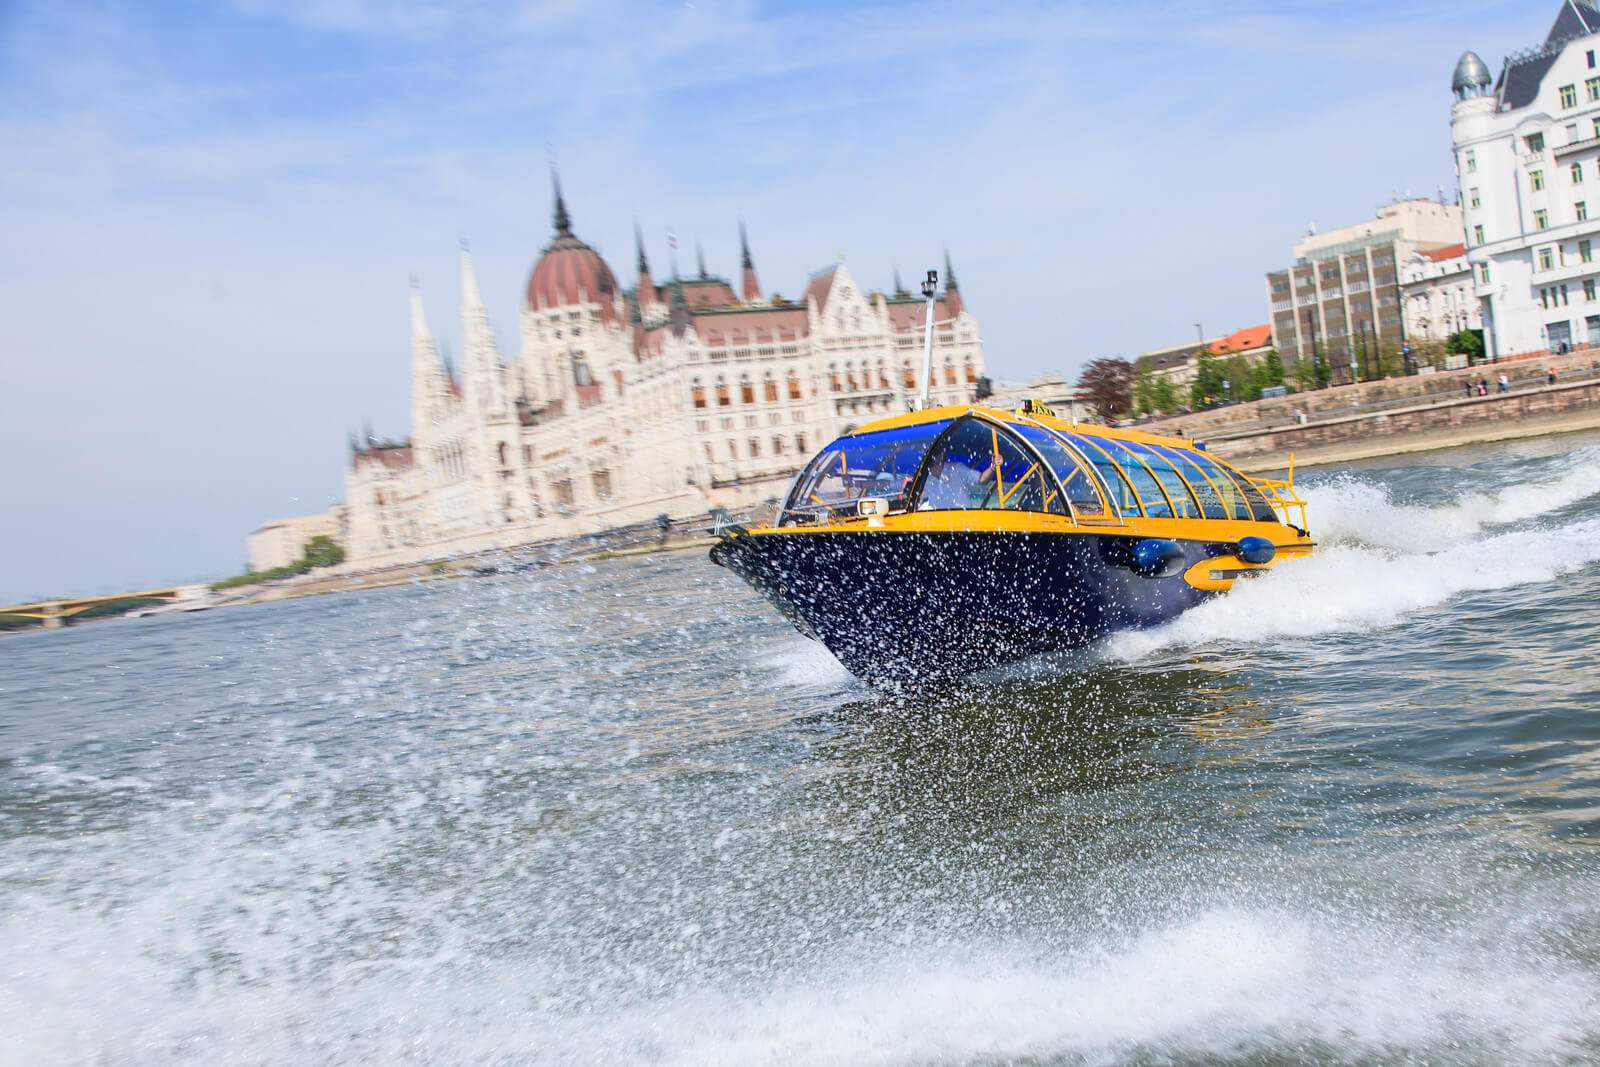 New, regularly scheduled water taxi on the Danube